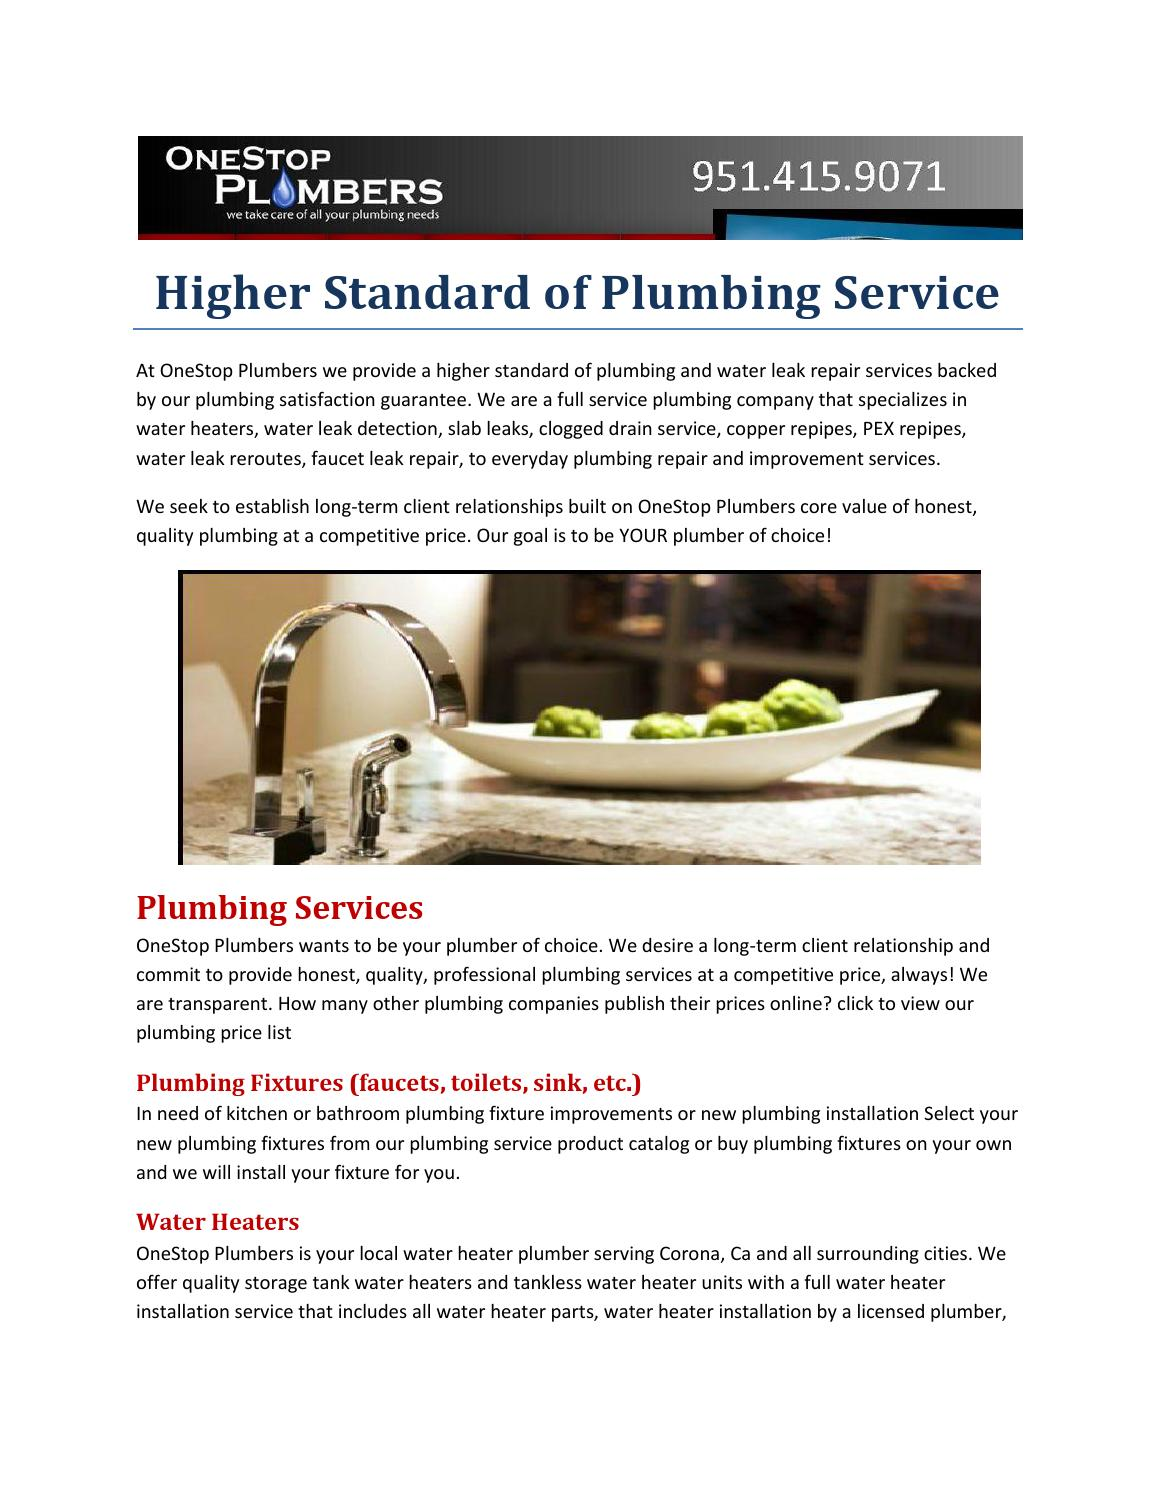 Higher standard of plumbing service by onestopplumbers - issuu